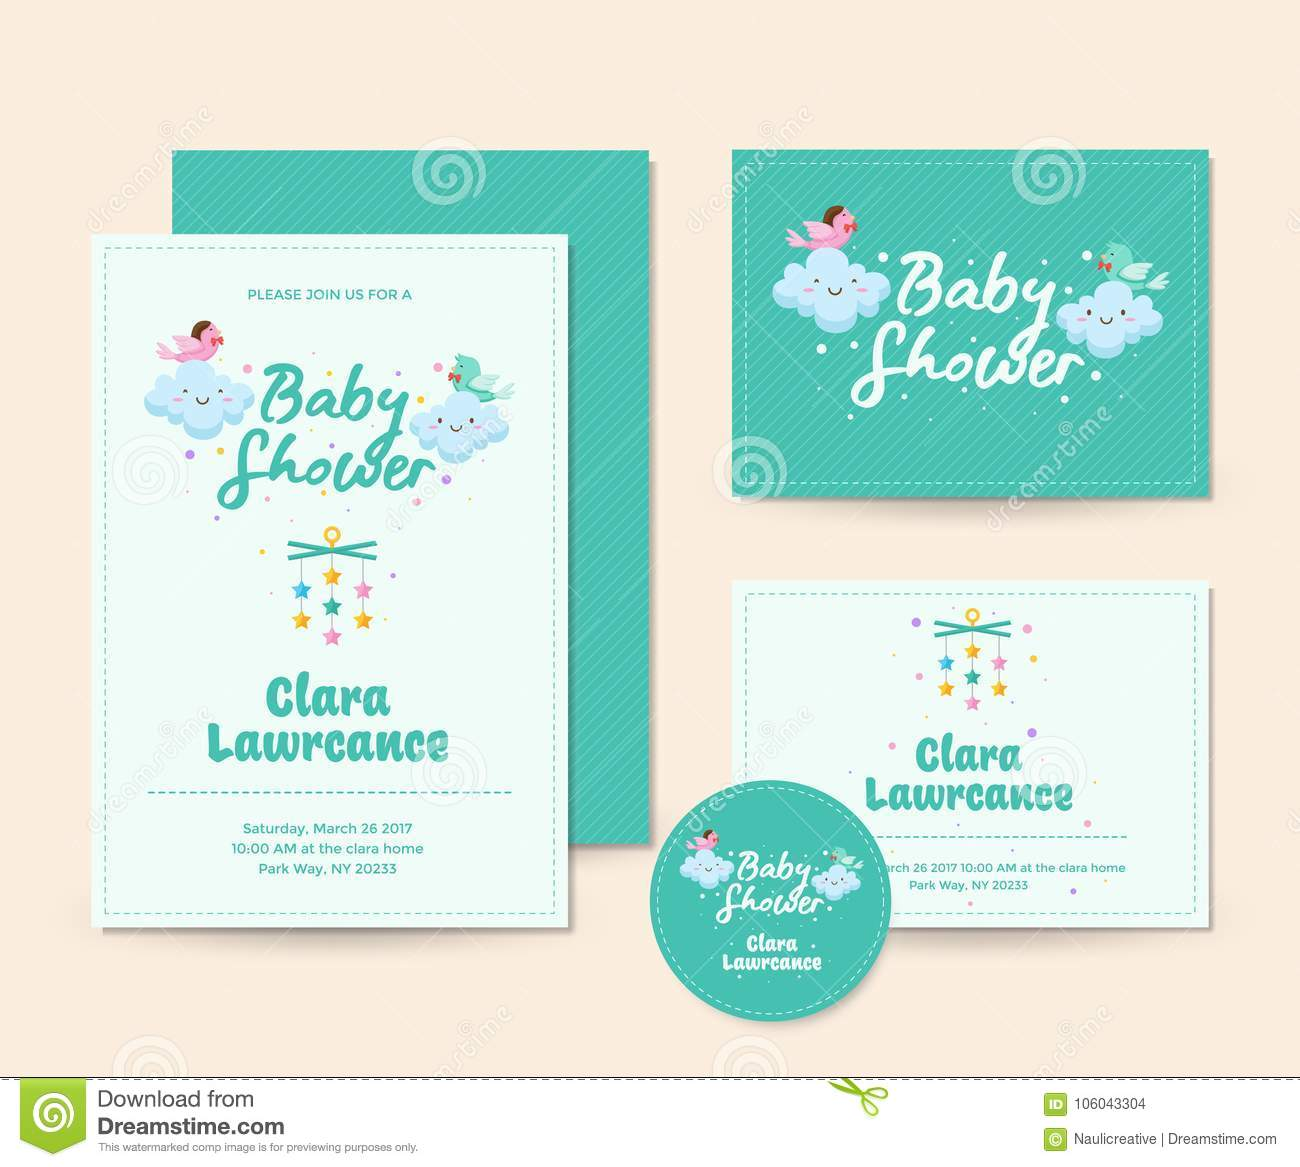 Cute Cloud Theme Baby Shower Invitation Card Illustration Template